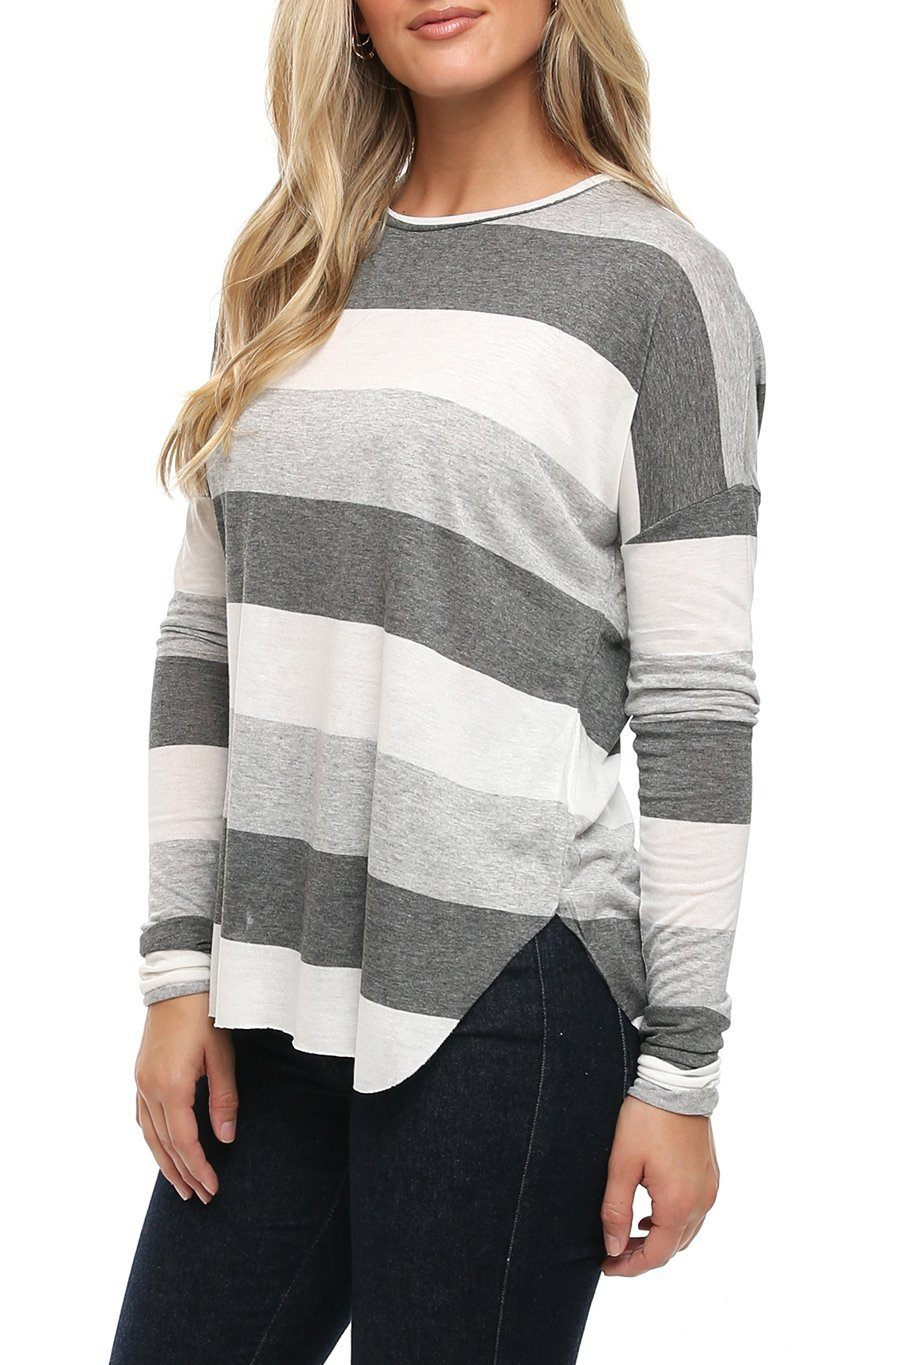 All Day Dolman Tee - Grey Stripe - Shore